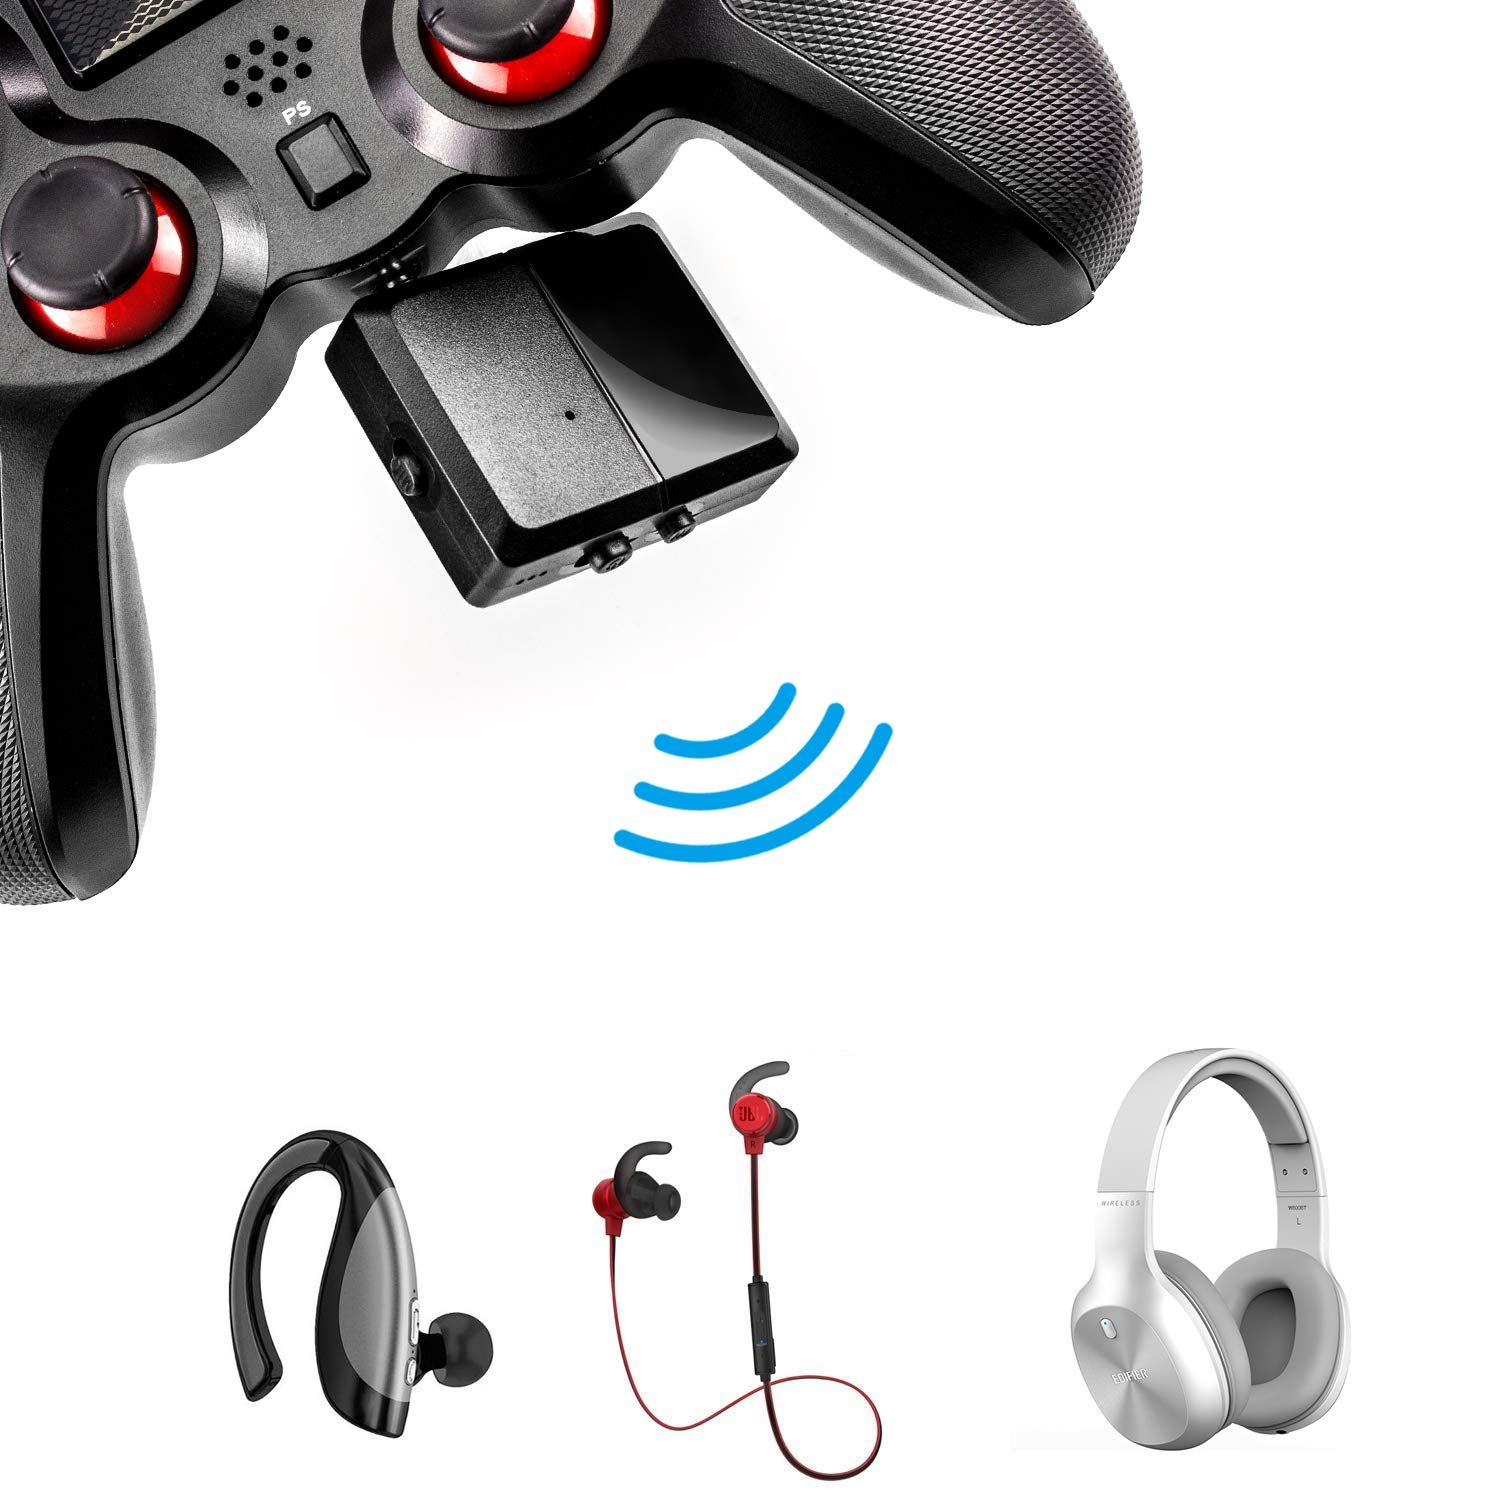 Jamswall Wireless Bluetooth Adapter Stereo Headset Adapter With Microphone Work For Ps4 Xbox One Switch Game Bluetooth Adapter Audio Adapter Gaming Accessories